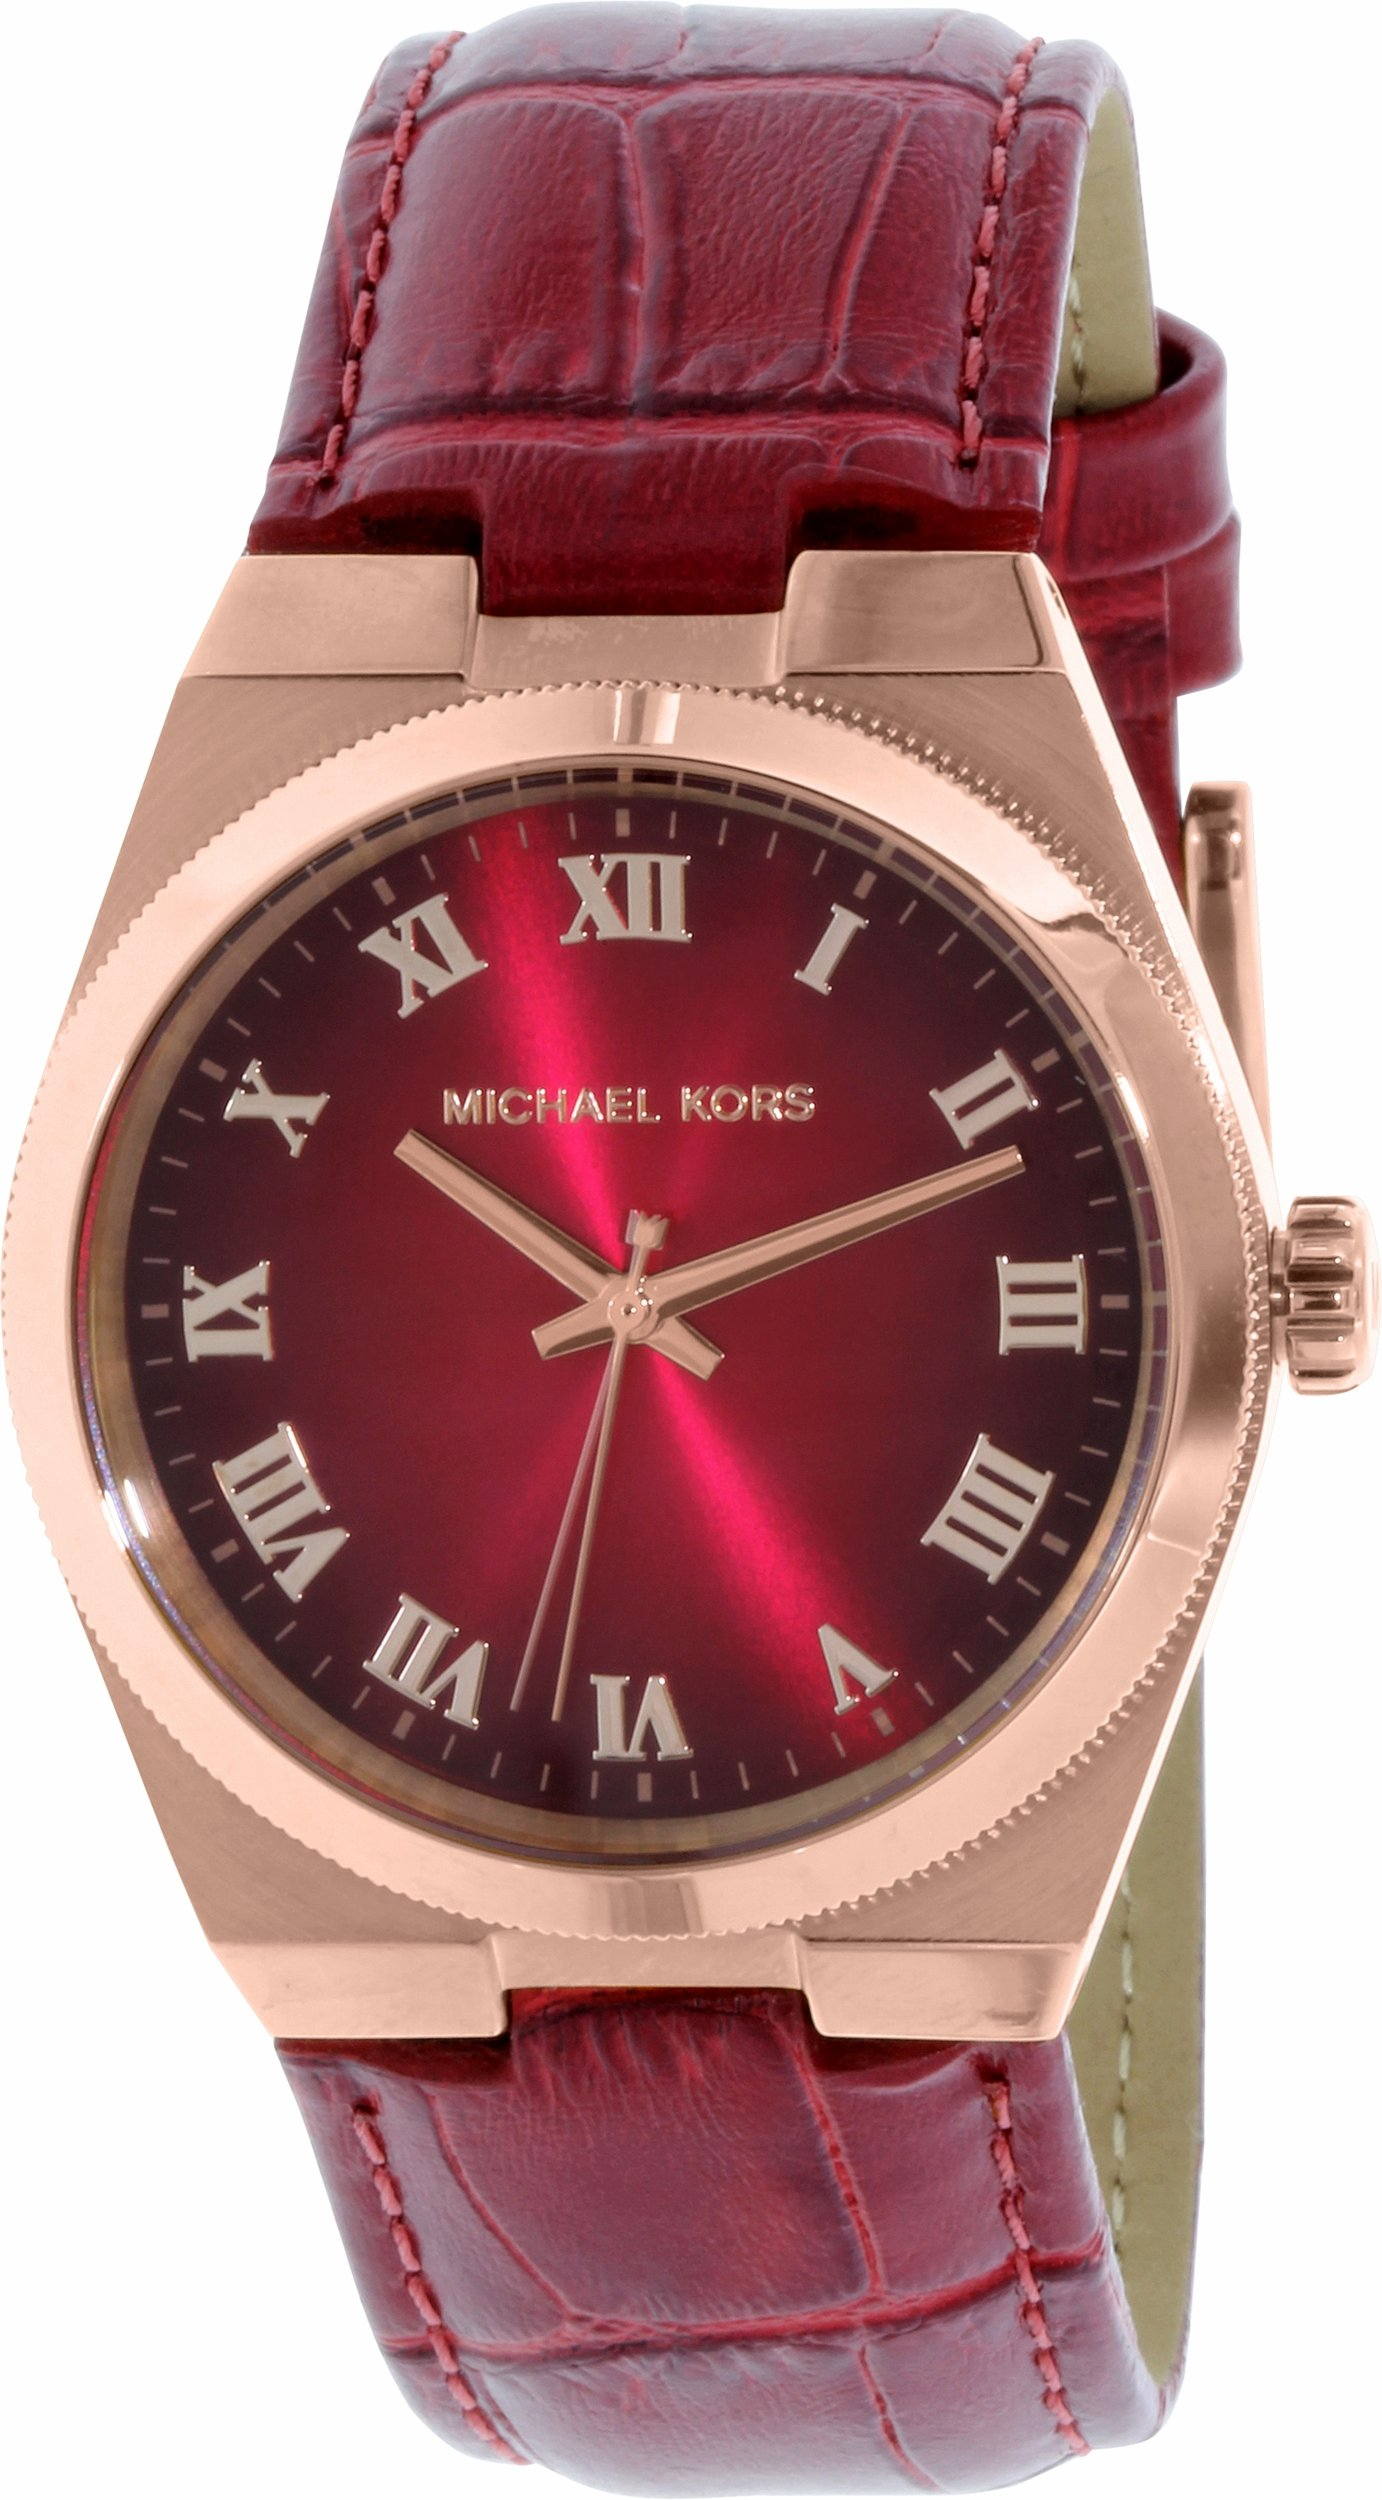 Michael Kors Channing Red Dial Red Leather Unisex Watch MK2357